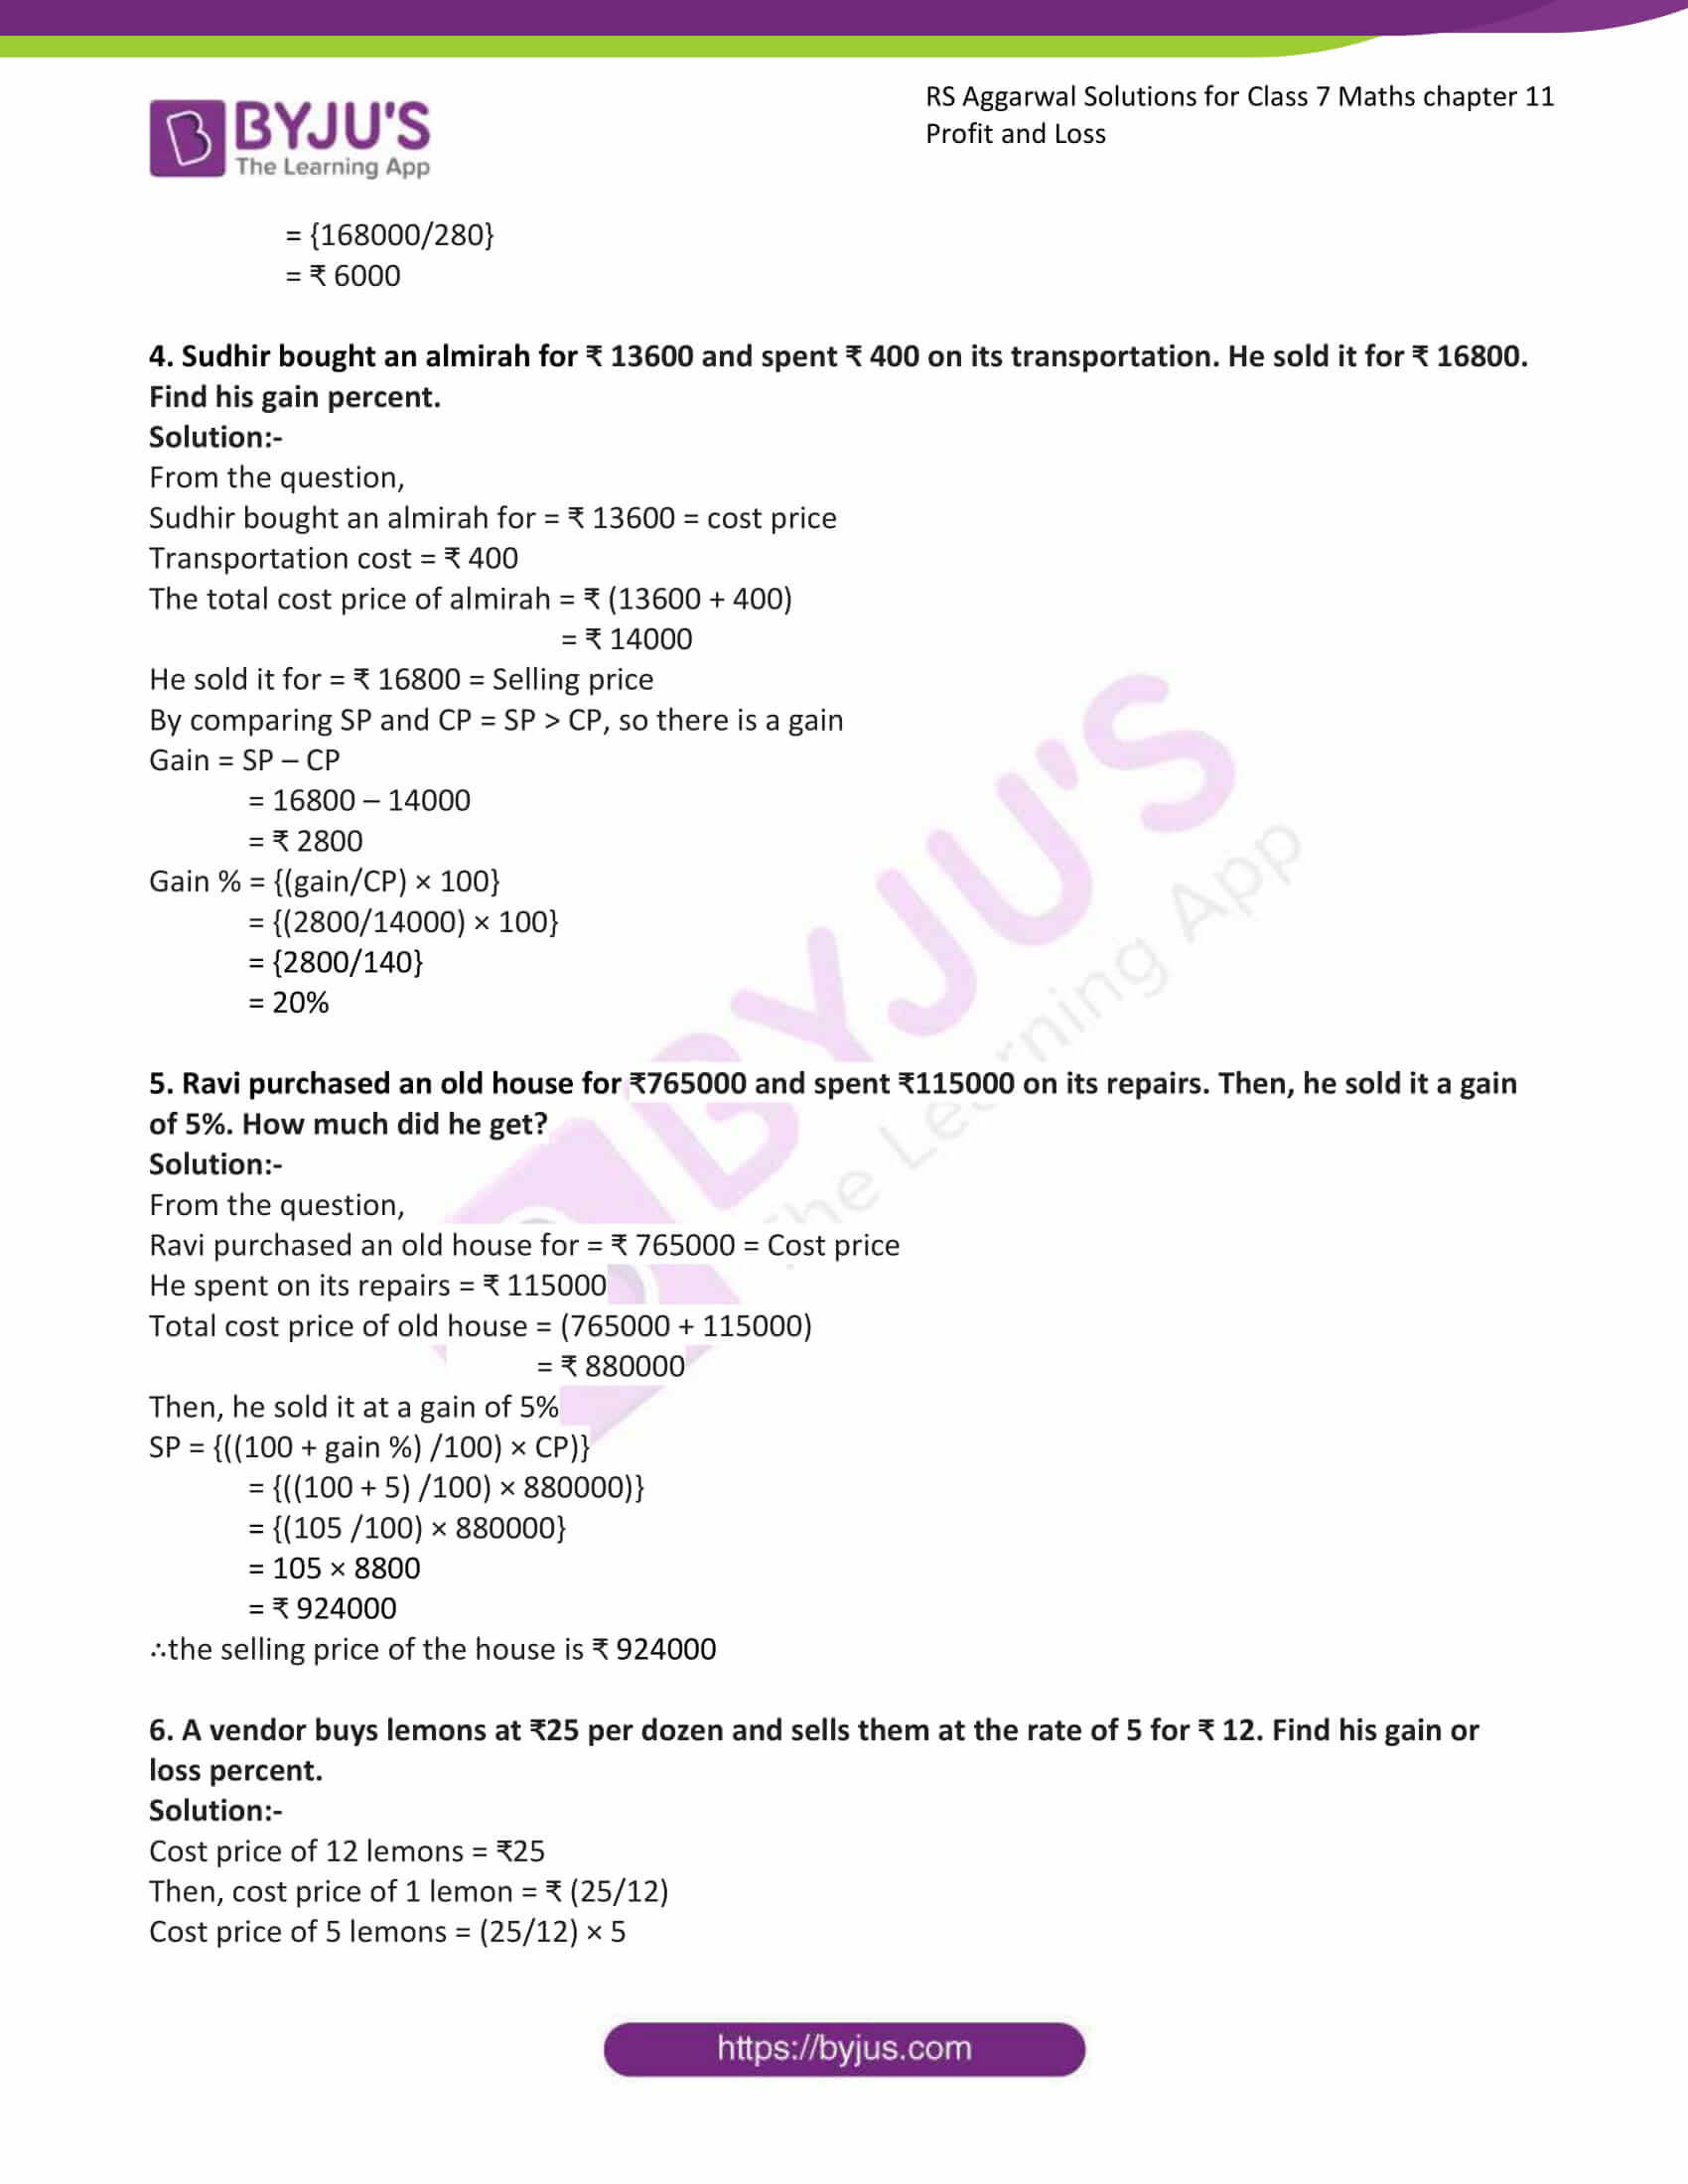 RS Aggarwal Solutions Class 7 Maths Chapter 11 Profit and Loss 04